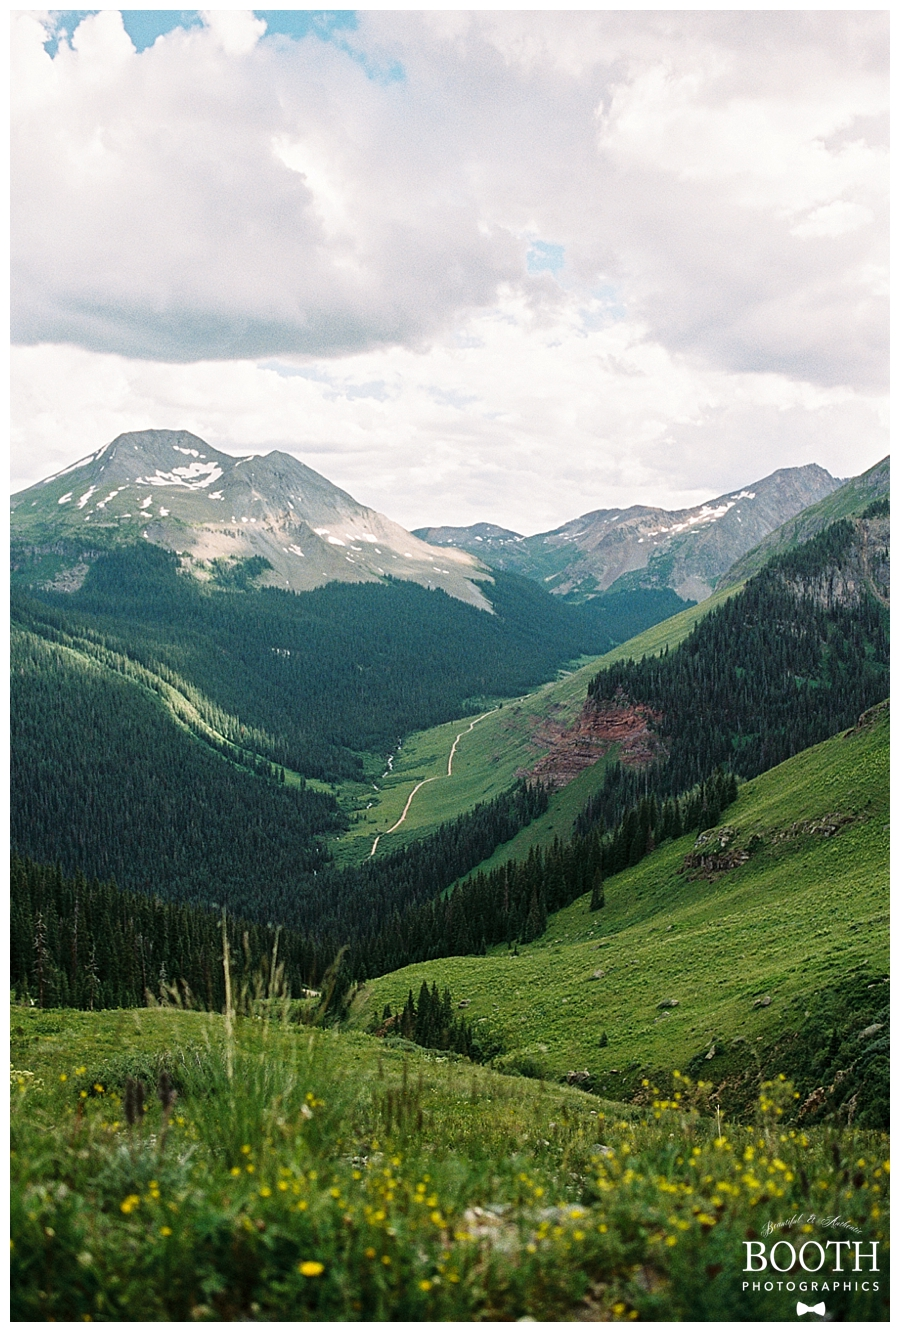 Colorado Rocky Mountains by fine art film photographers, Booth Photographics